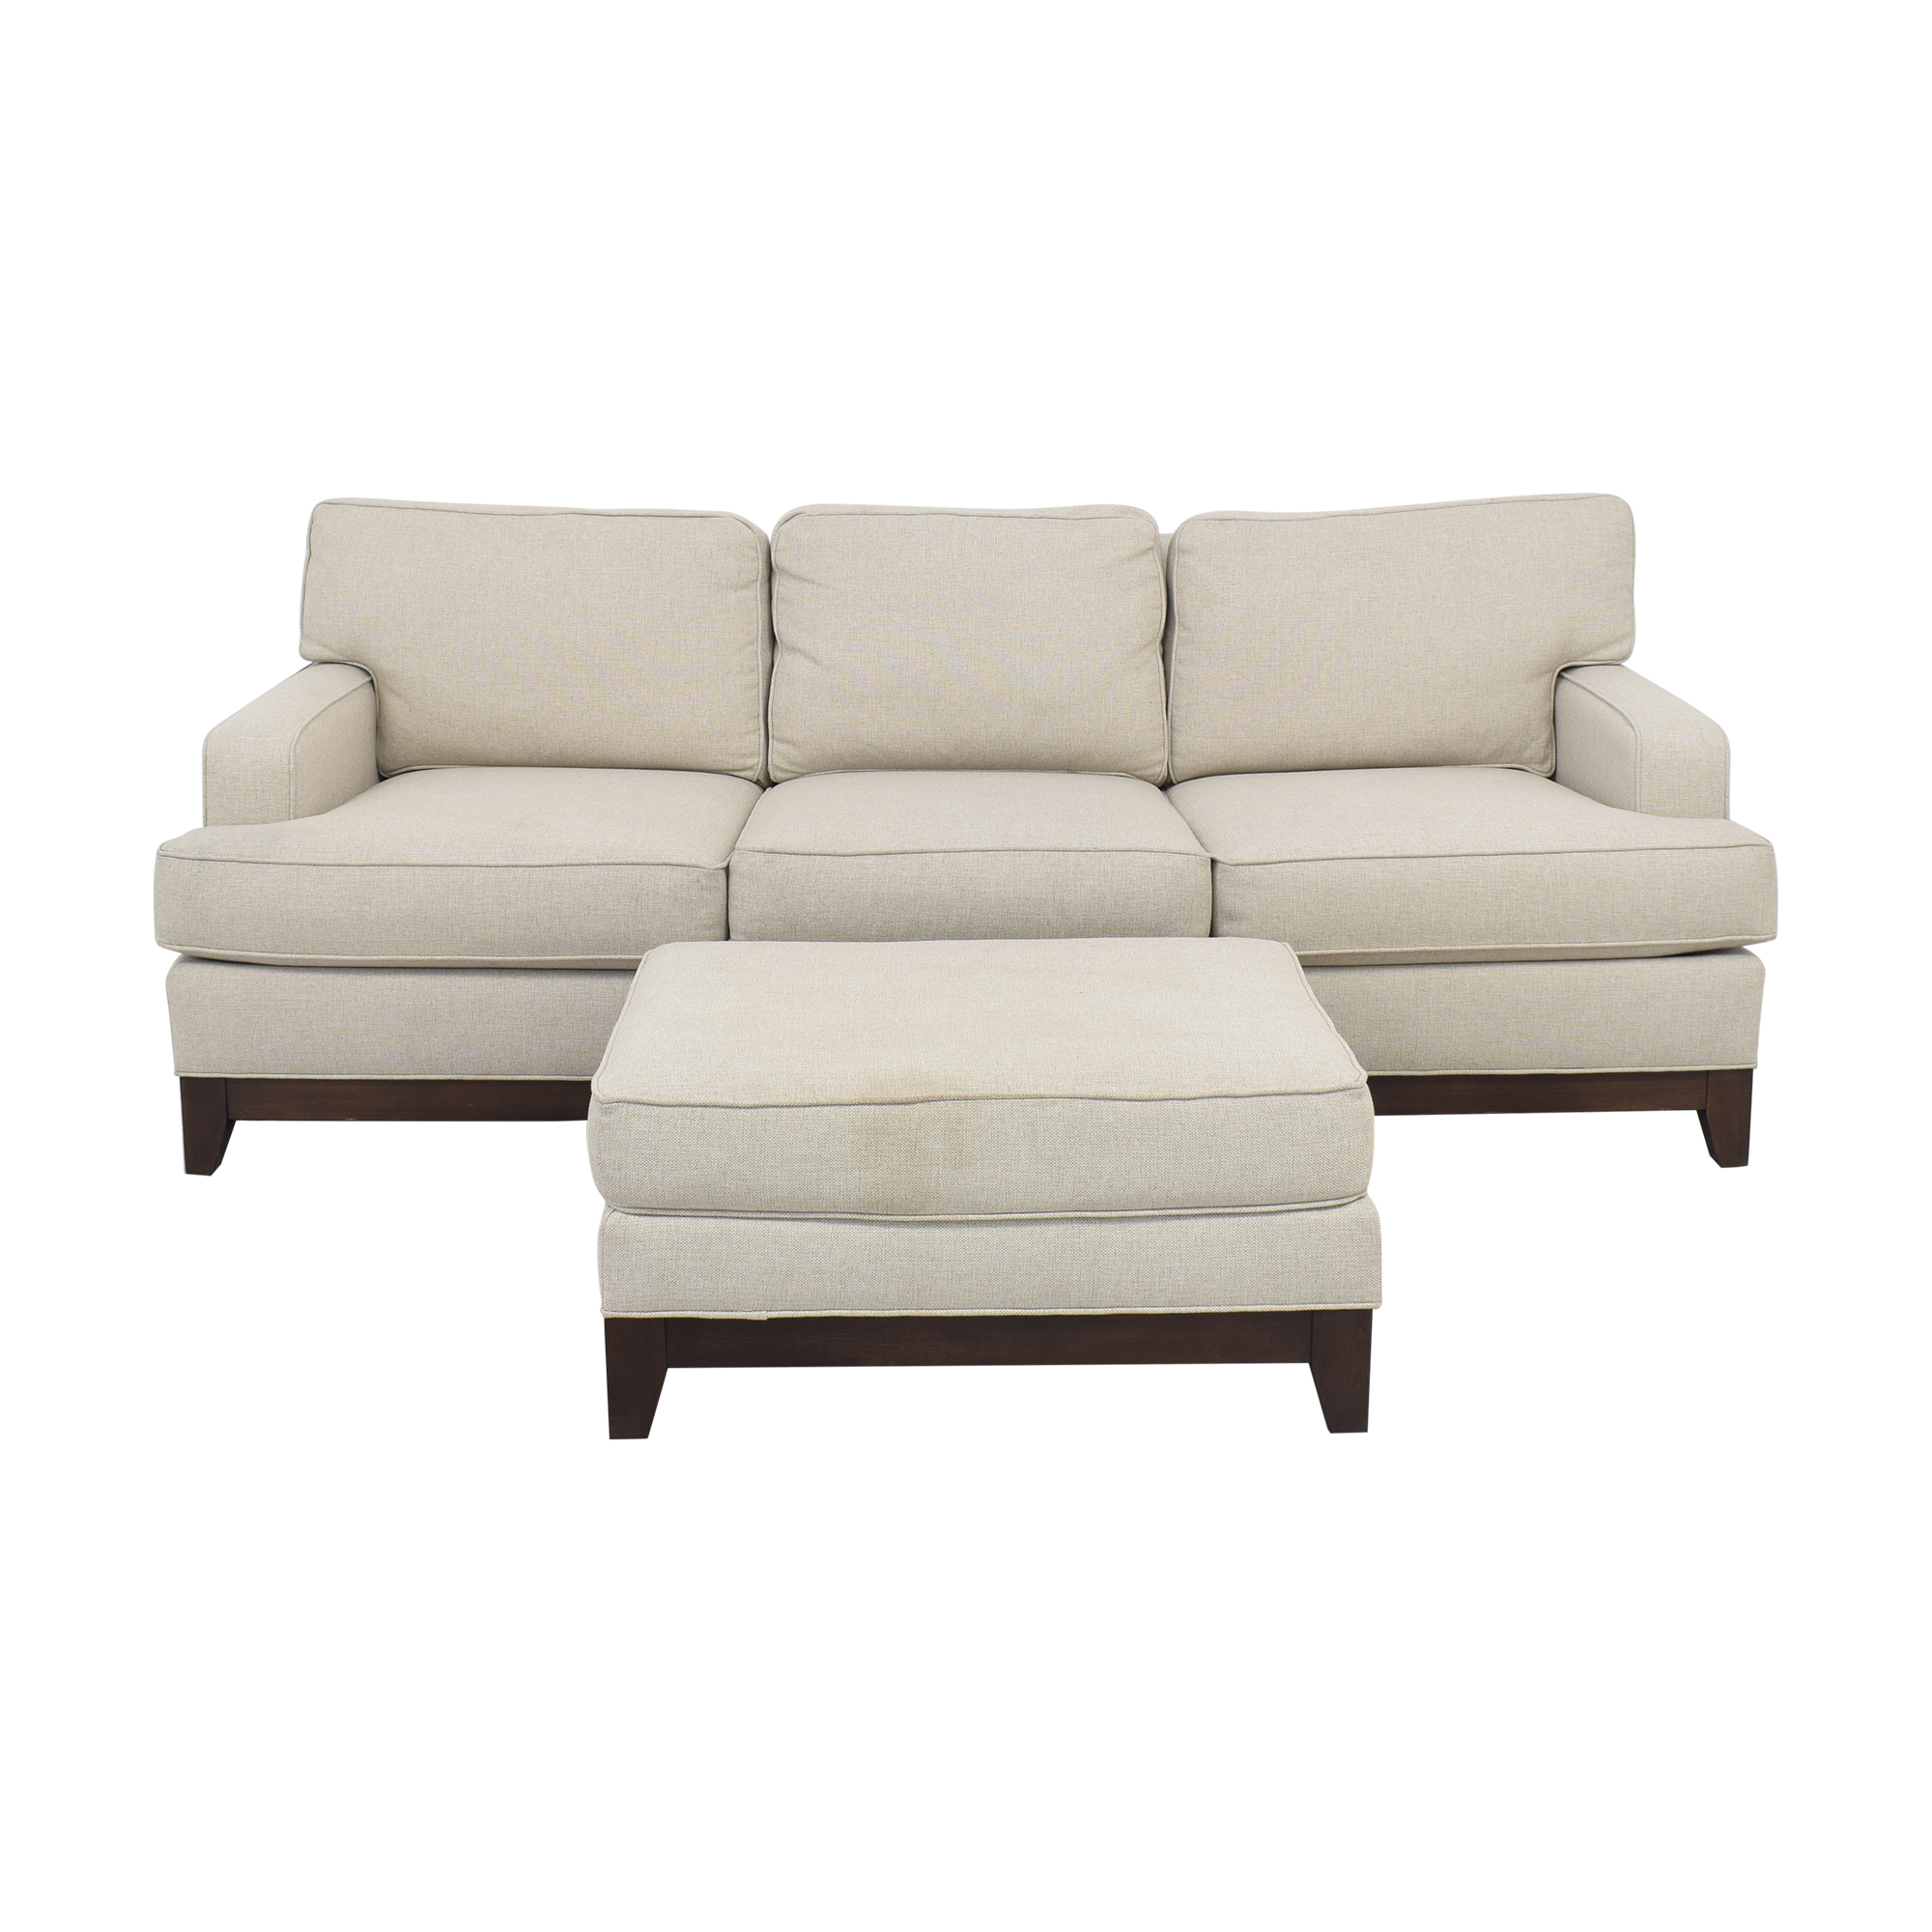 Ethan Allen Ethan Allen Arcata Sofa with Ottoman coupon